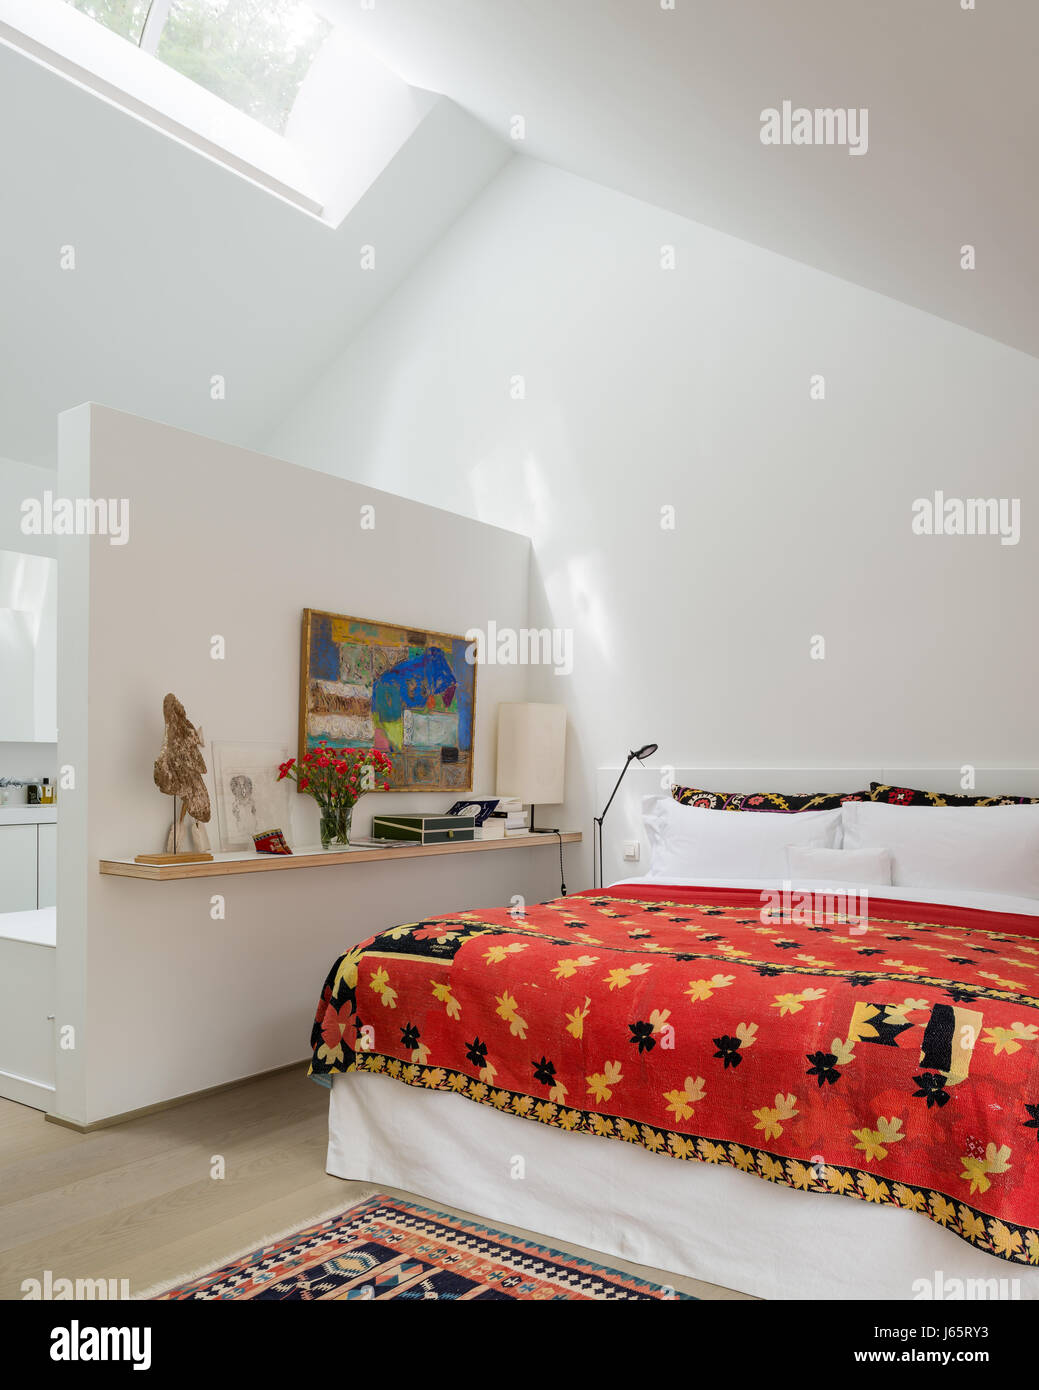 A-frame roof with low diving wall to ensuite and red quilt from Dhaka - Stock Image